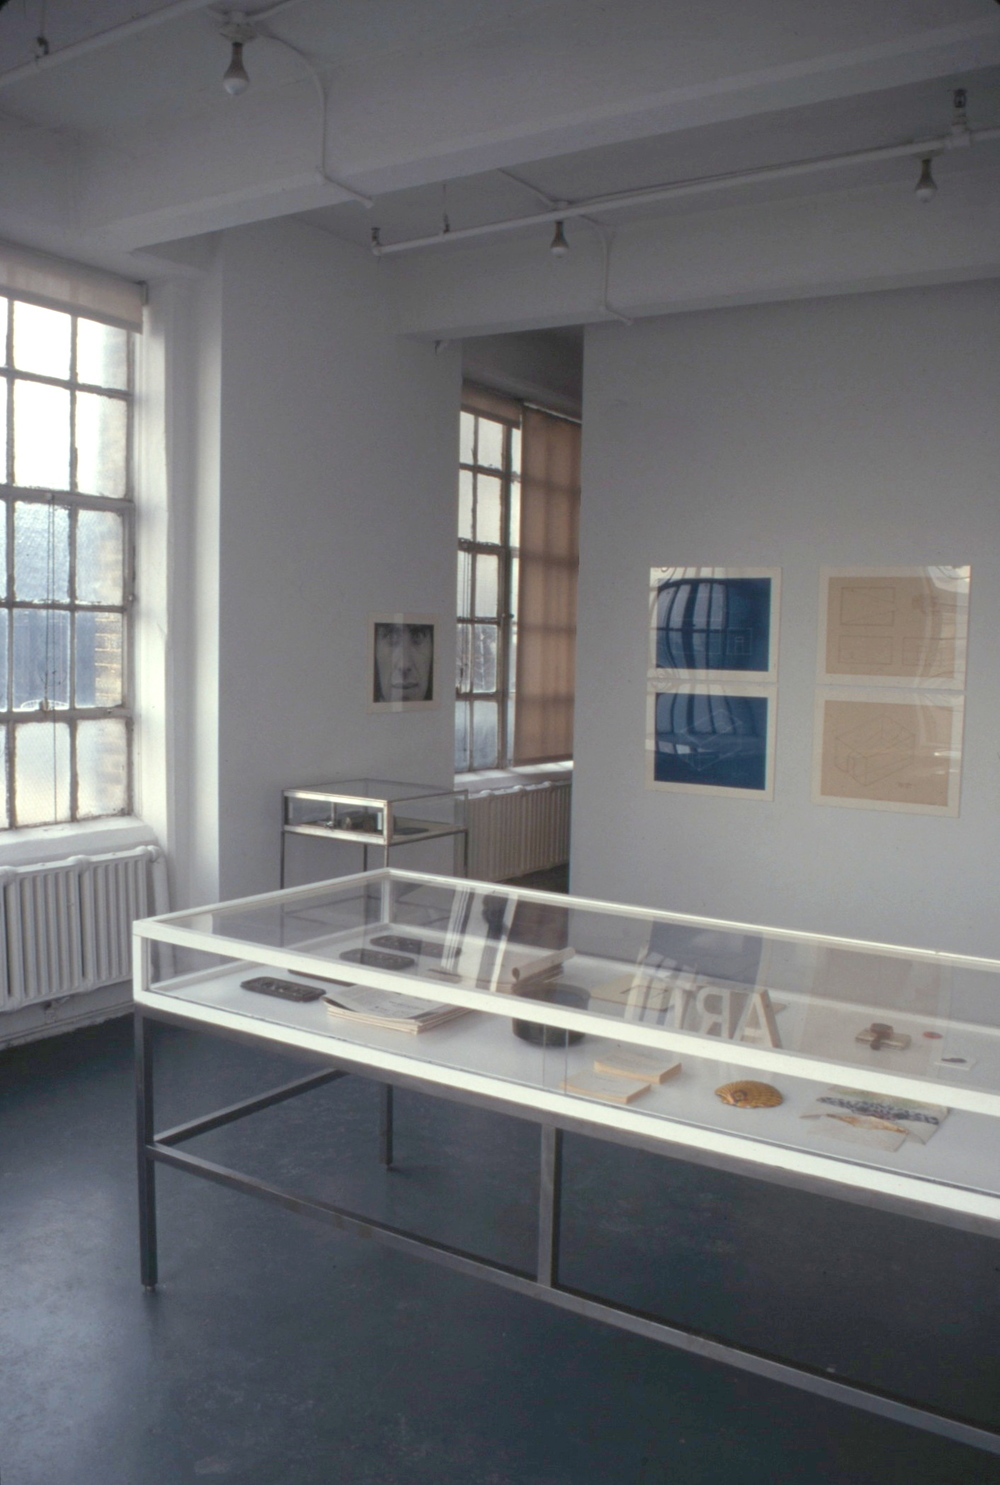 Stephen Kaltenbach at Lawrence Markey 2000 14.jpeg